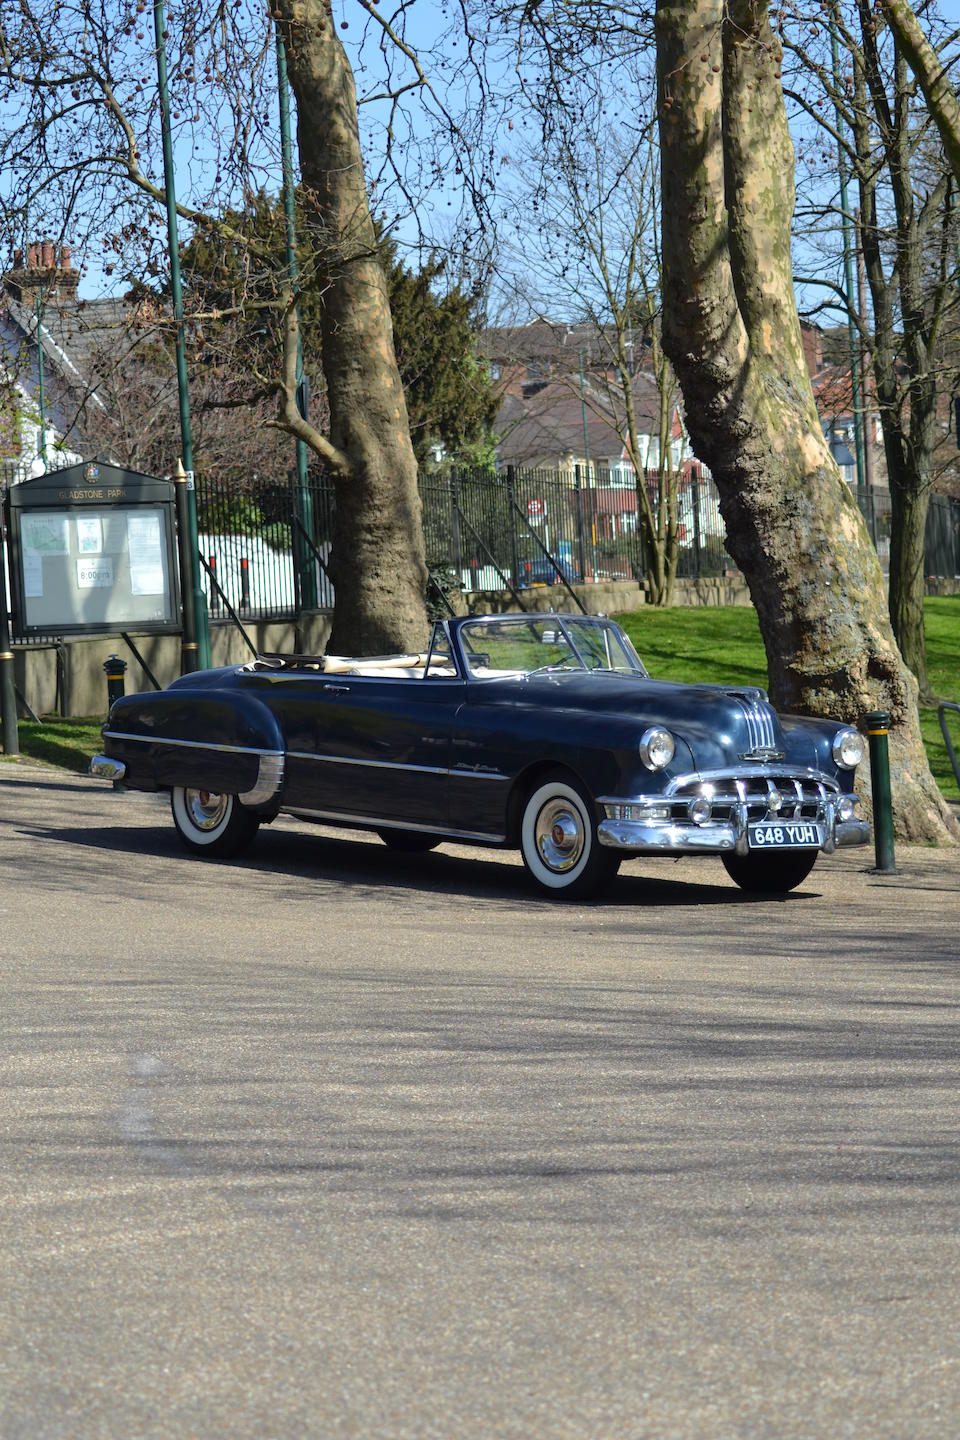 The ex-Keith Richards, used during the making of the famed album, 'Exile On Main St',1950 Pontiac Chieftain 'Silver Streak' Convertible  Chassis no. P8TH 83630